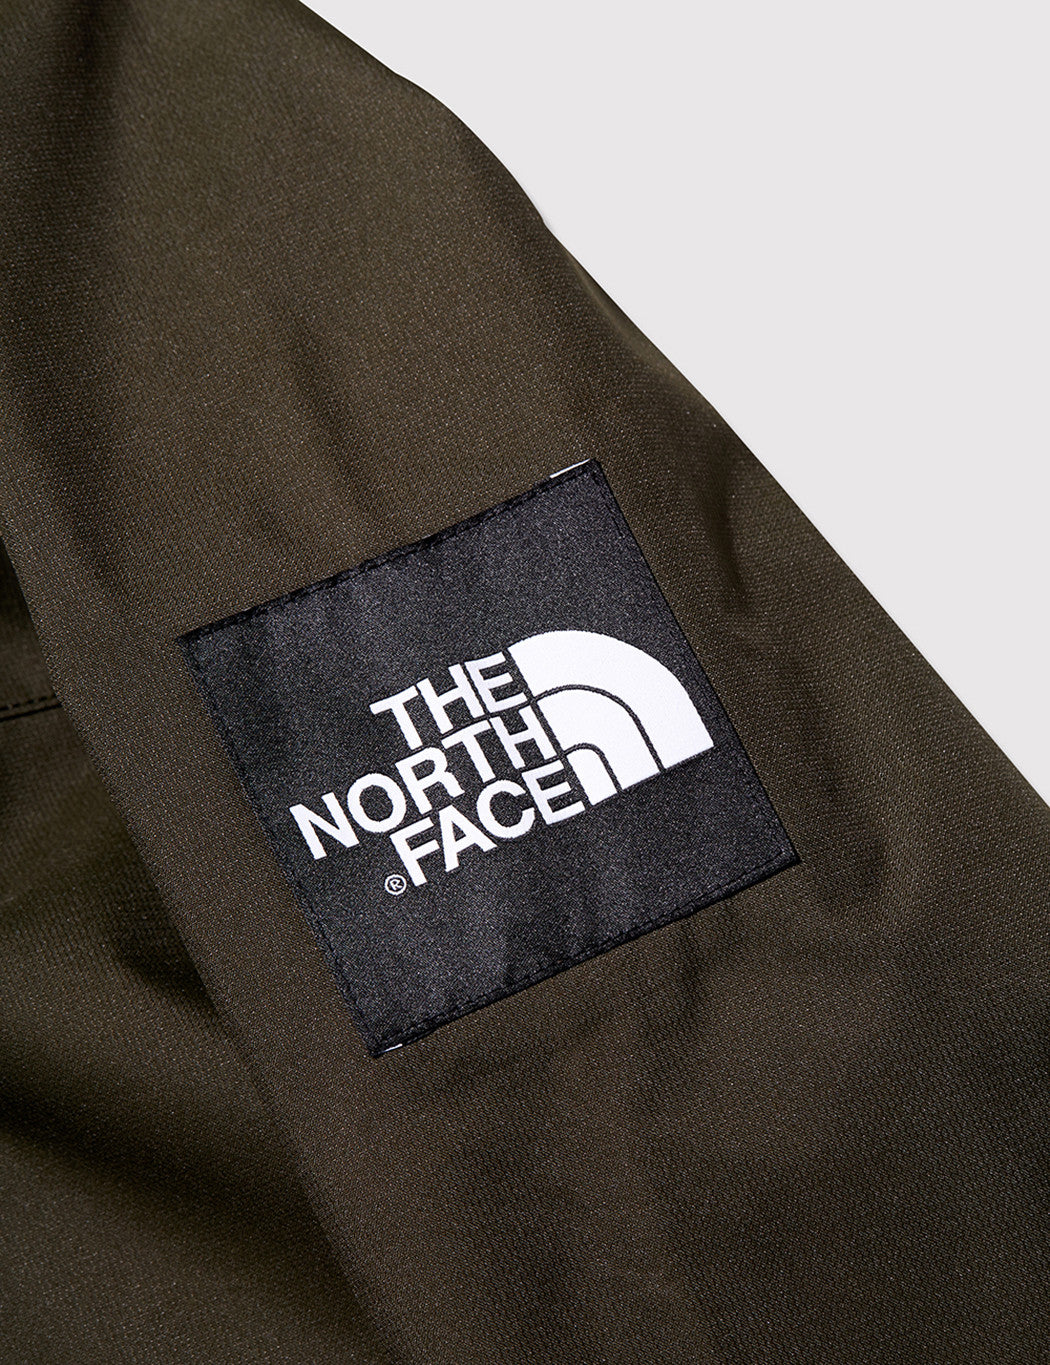 North Face Mountain Q Jacket - Rosin Green